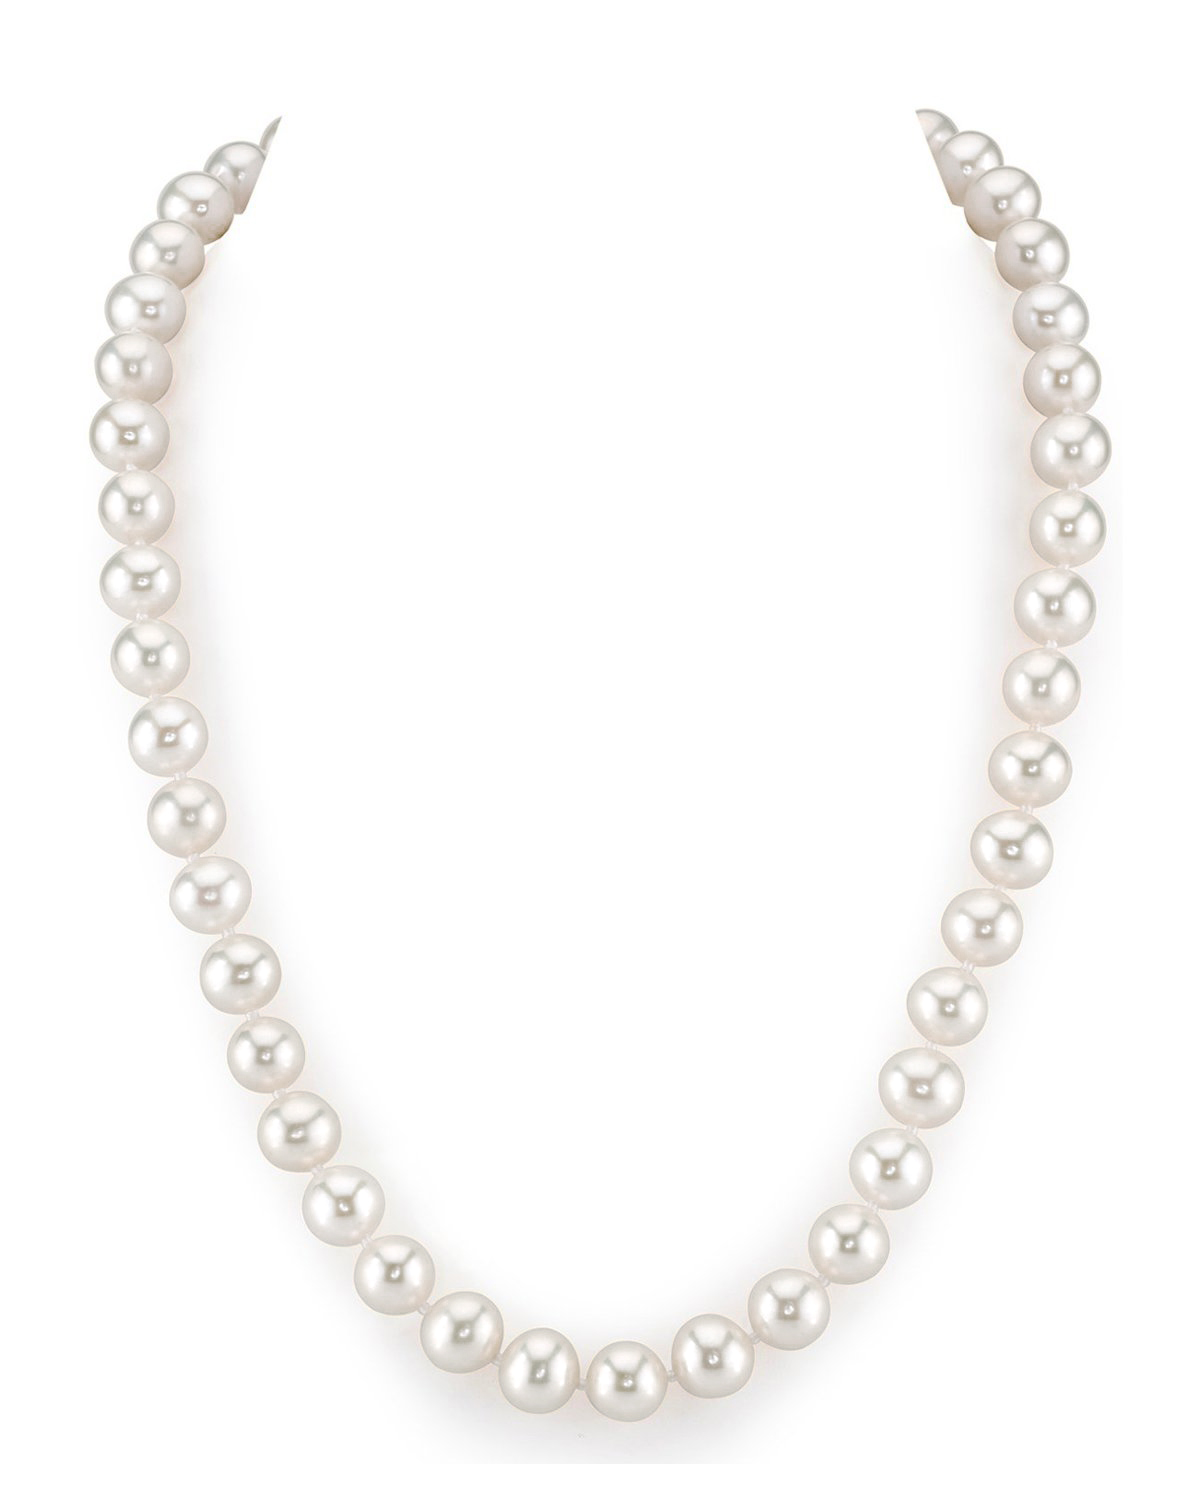 9-10mm White Freshwater Pearl Necklace - AAA Quality